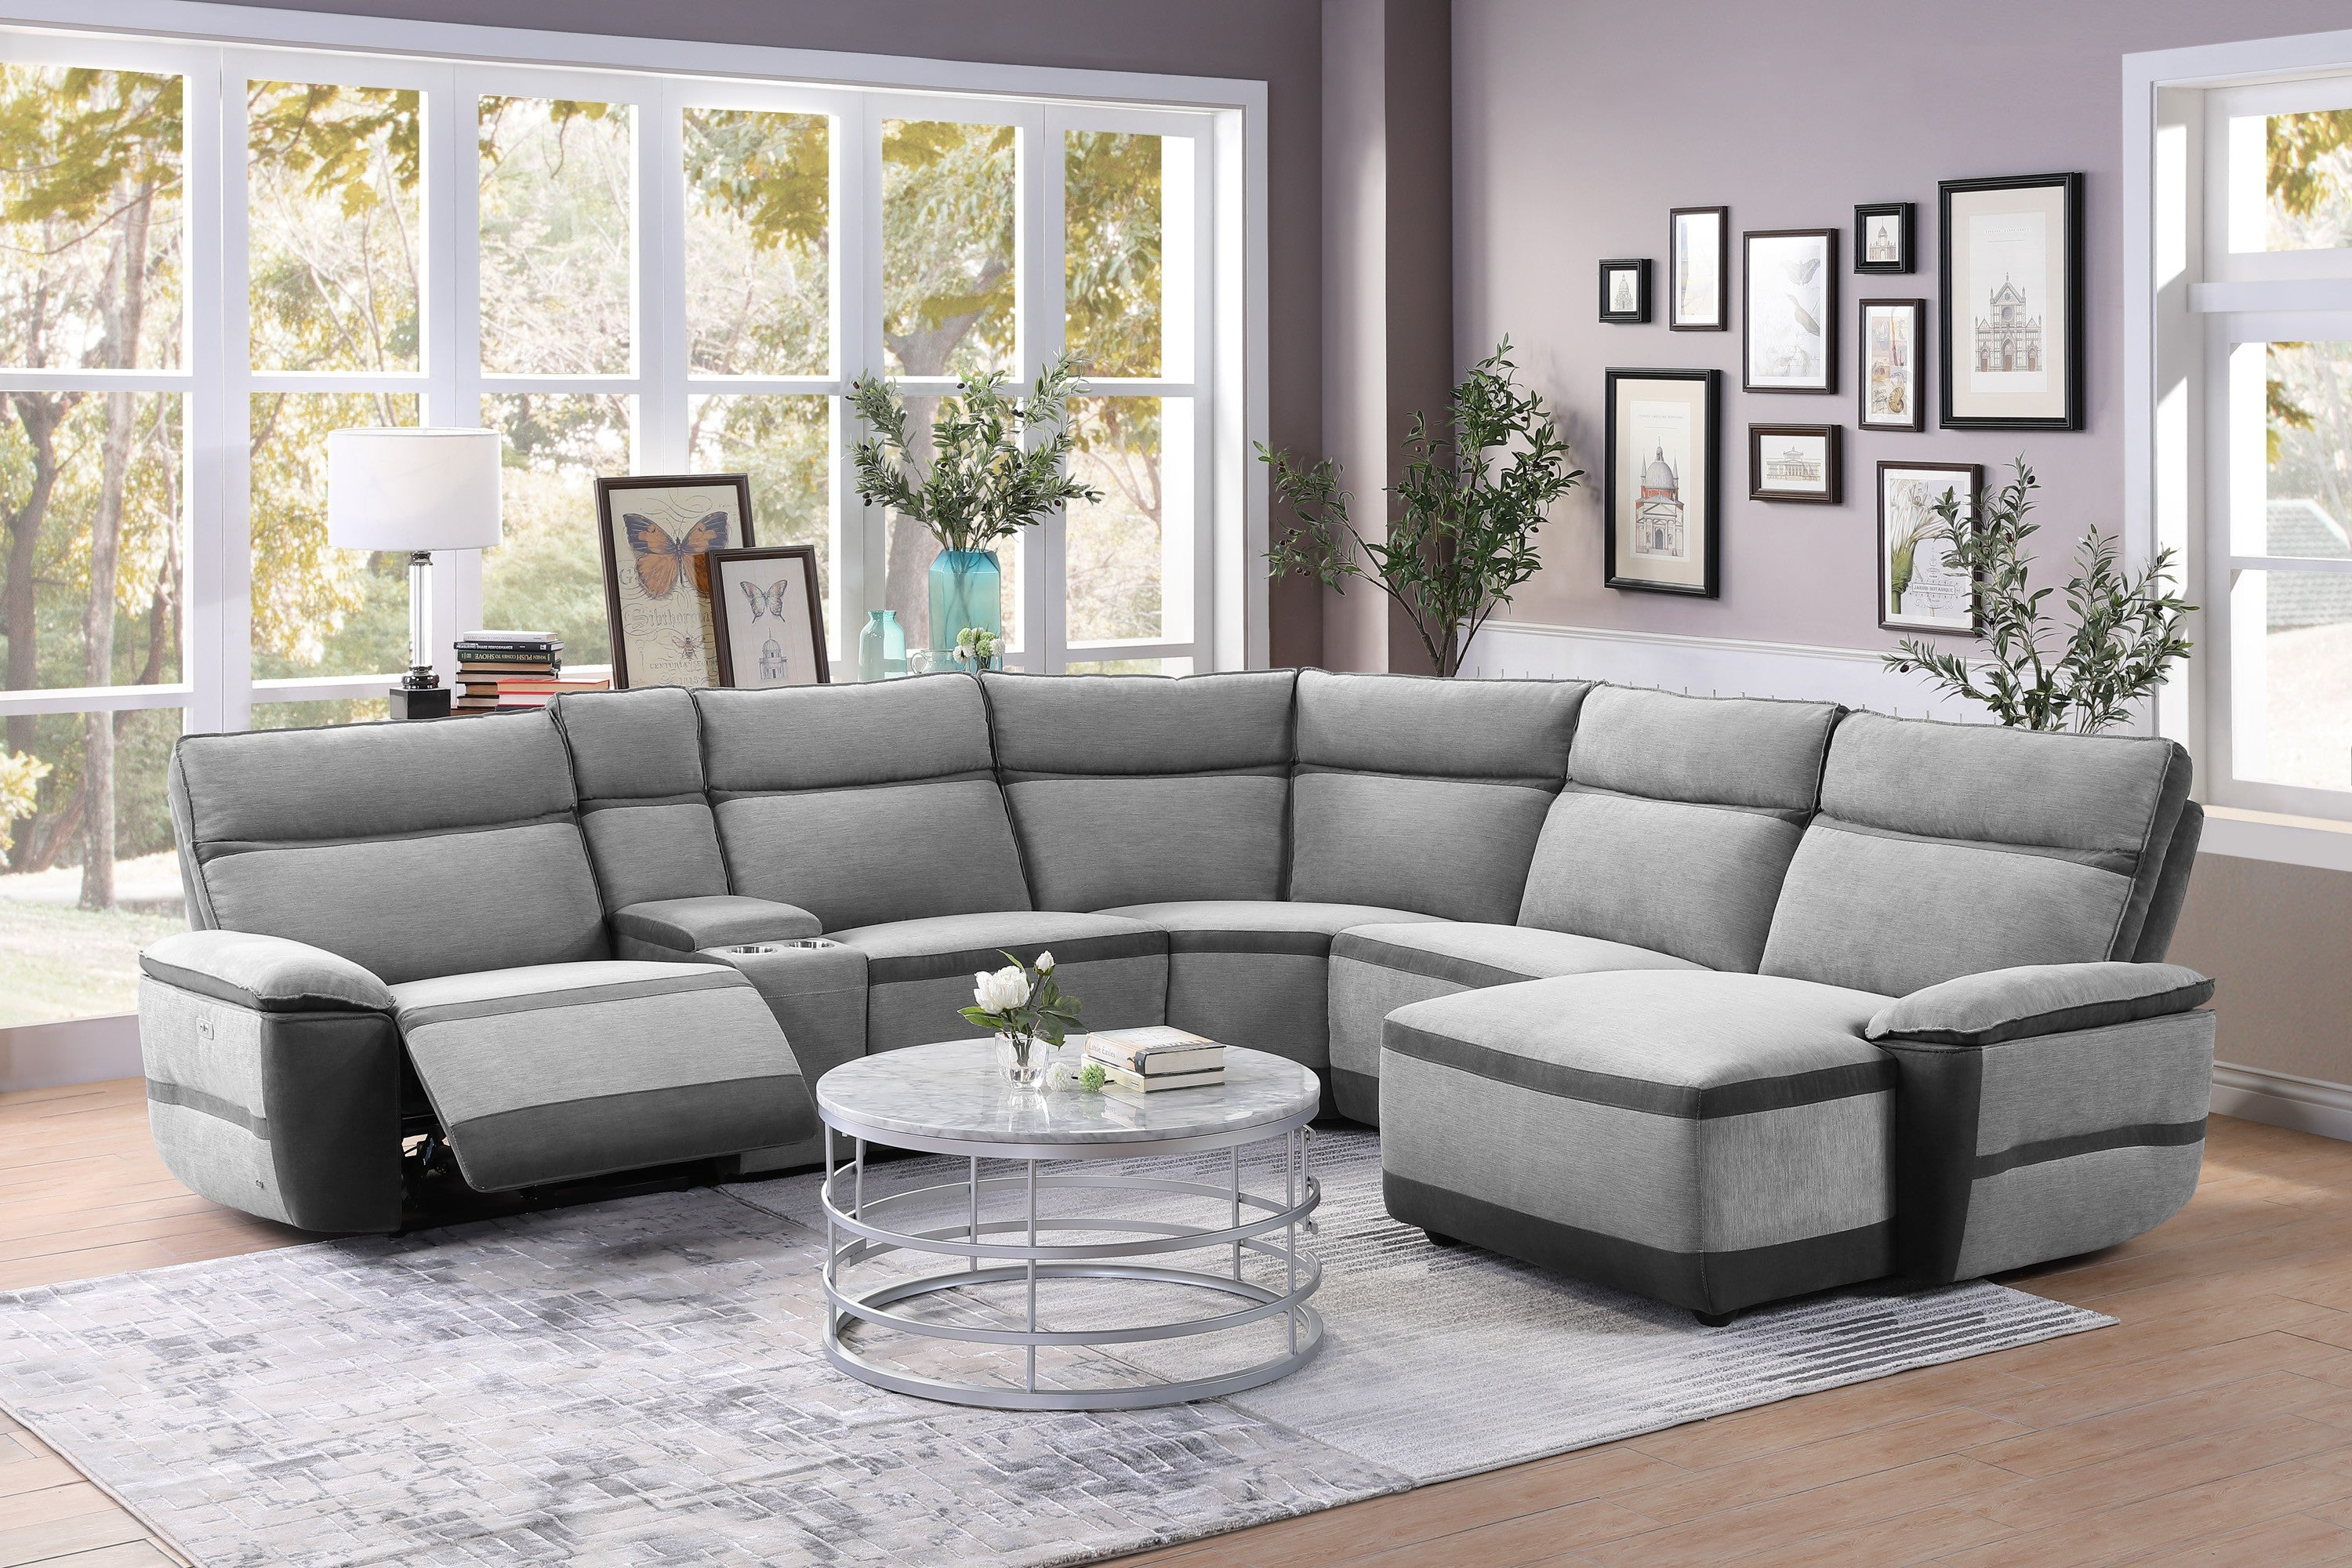 Homelegance Hedera Gray Polyester Finish 5 Piece Sectional Sofa